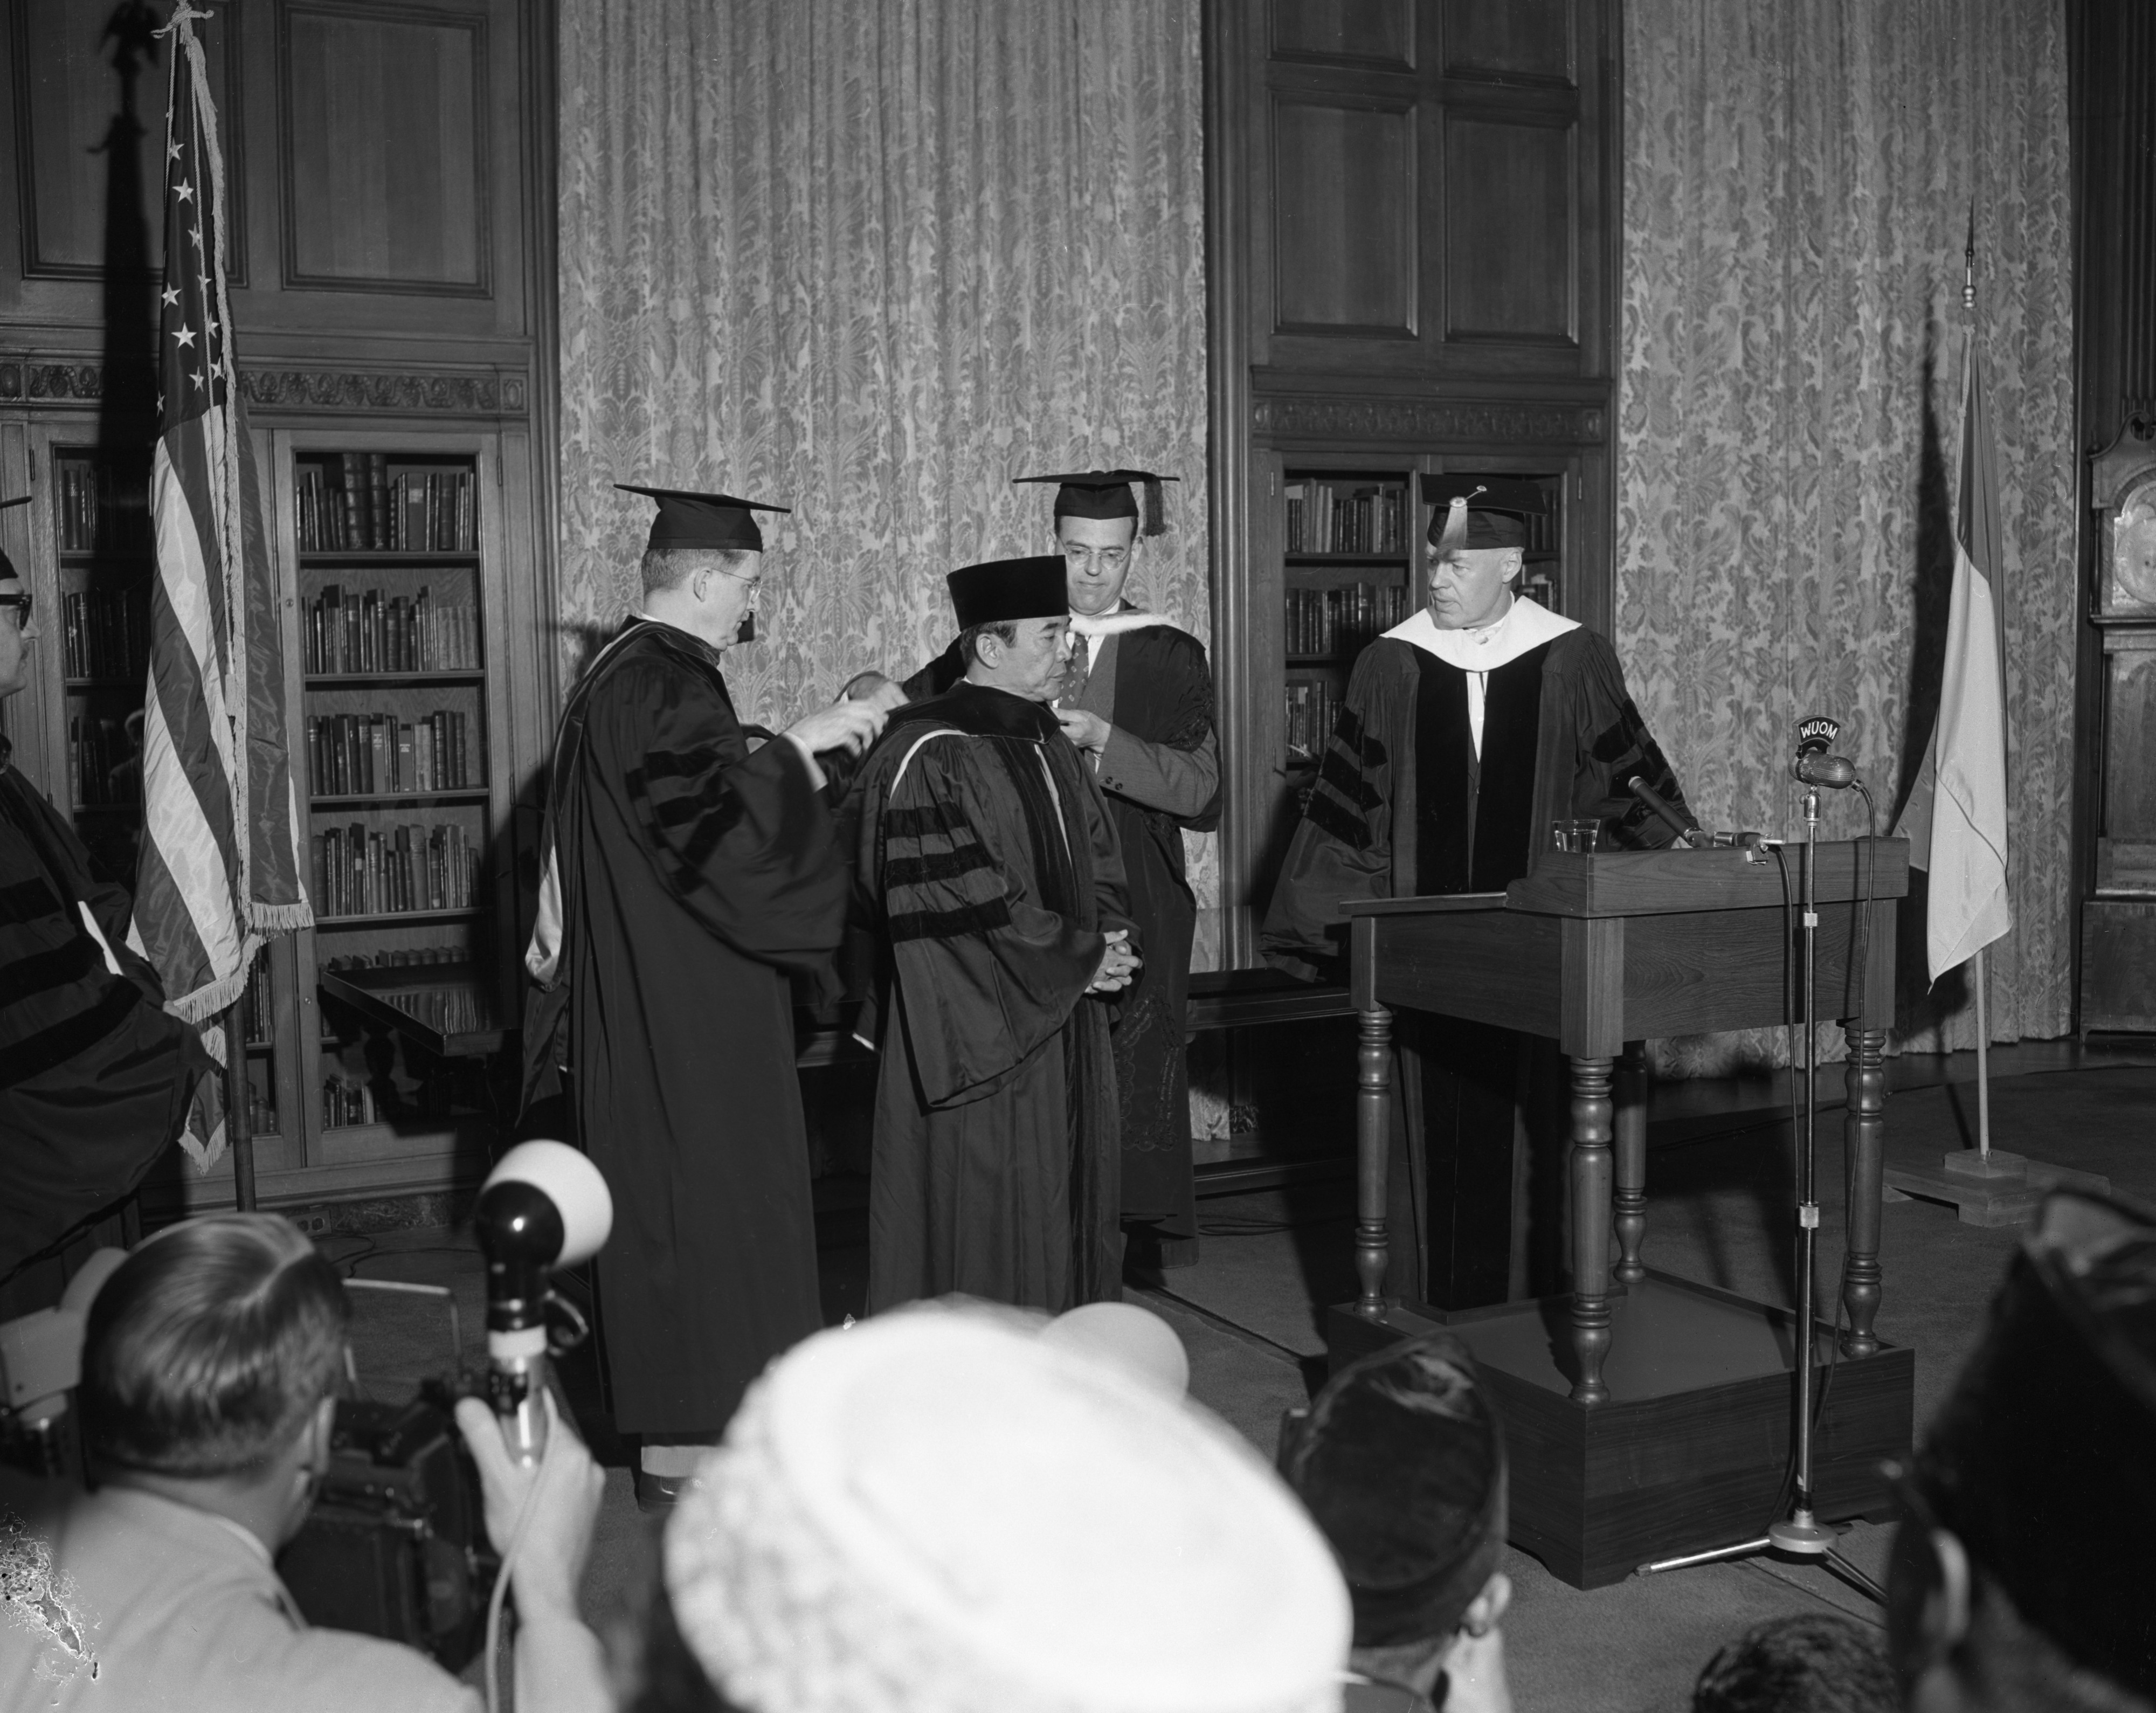 President of Indonesia, Dr. Sukarno, receives University of Michigan degree, May 1956 image